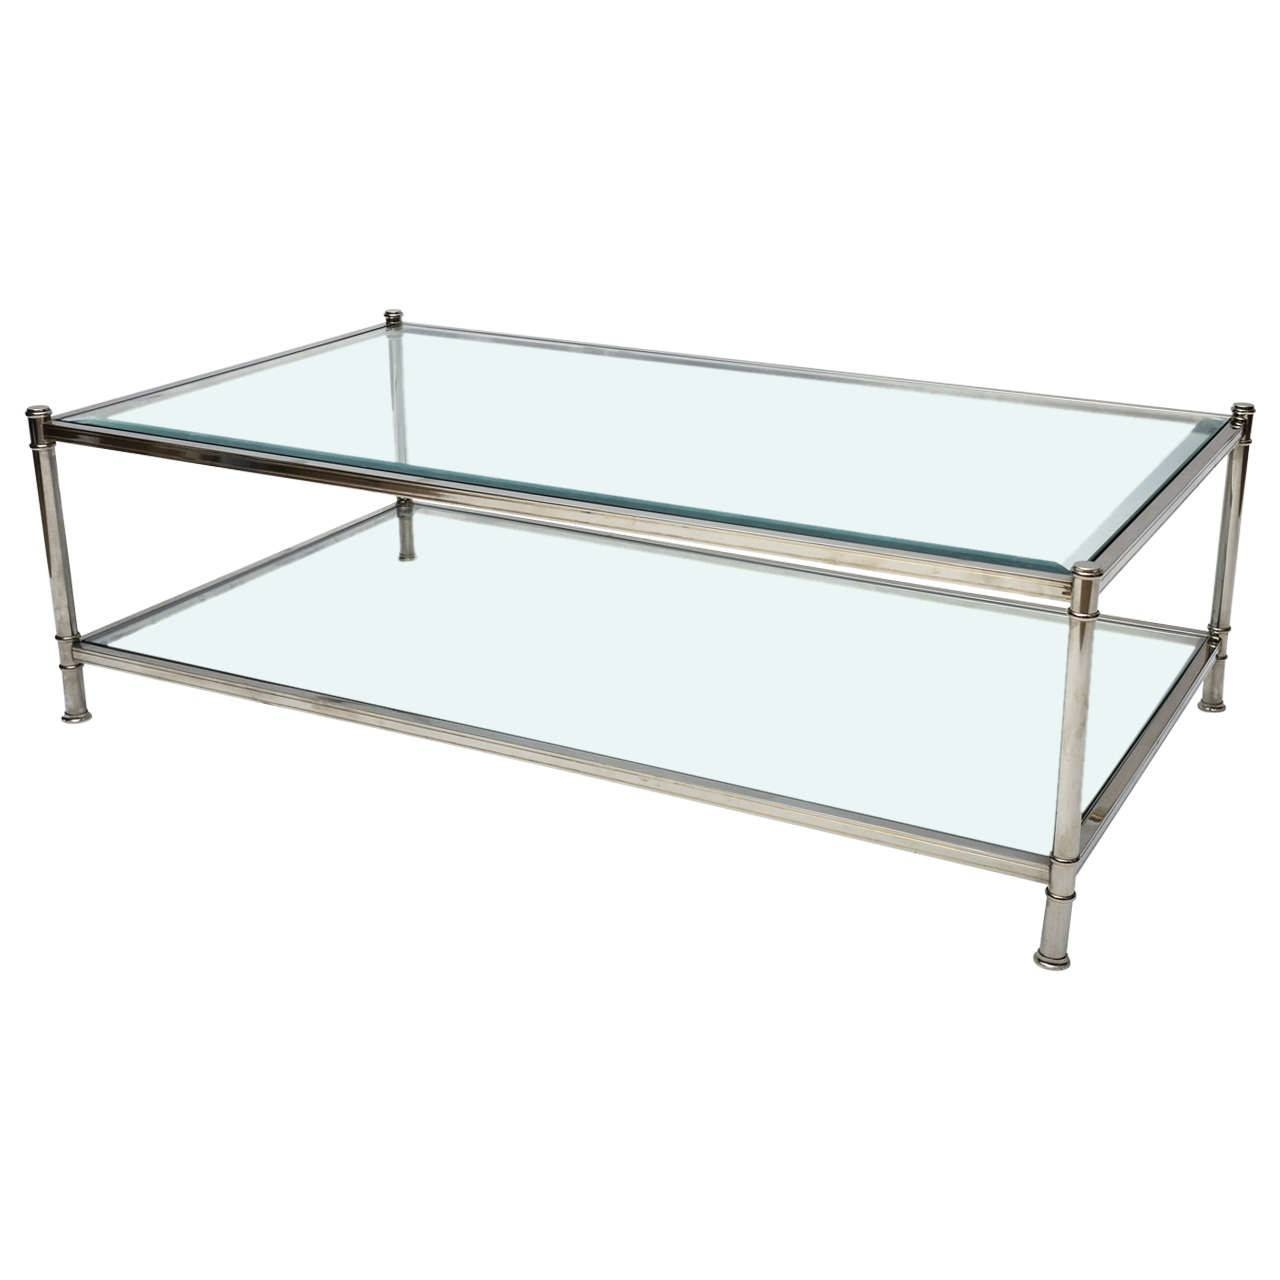 Furniture. Chrome And Glass Coffee Table Design Ideas: Clear in Chrome and Glass Coffee Tables (Image 13 of 30)